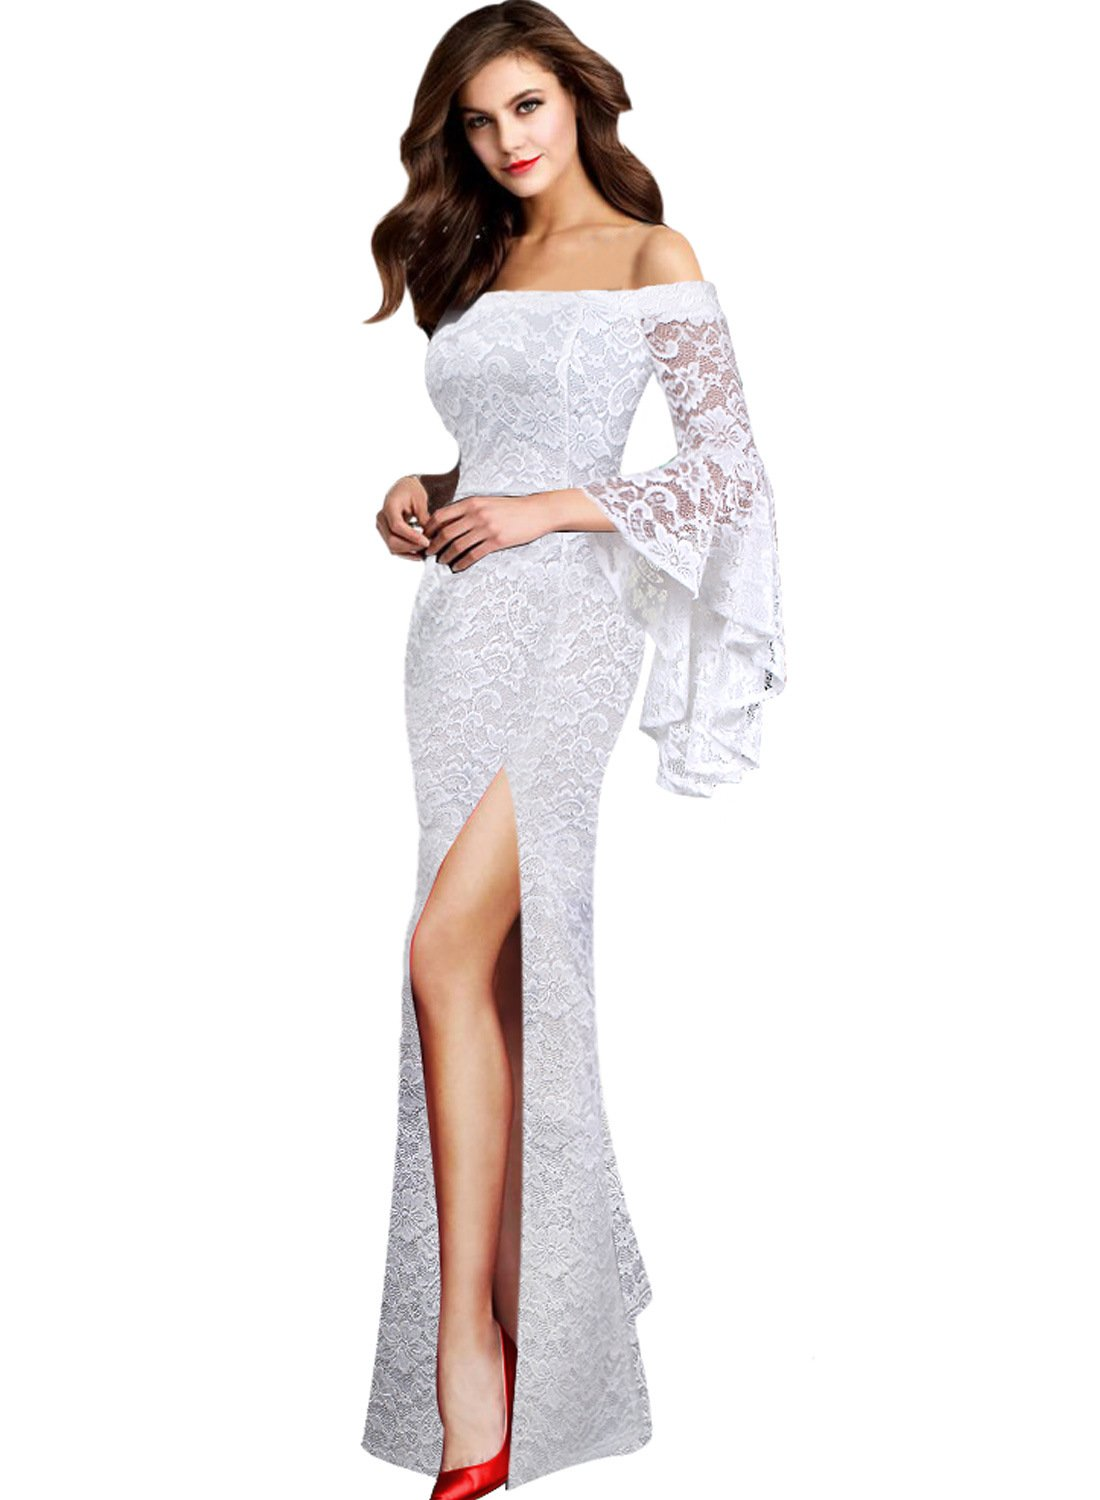 VFSHOW Womens Off Shoulder Bell Sleeve High Slit Formal Evening Party Maxi Dress product image